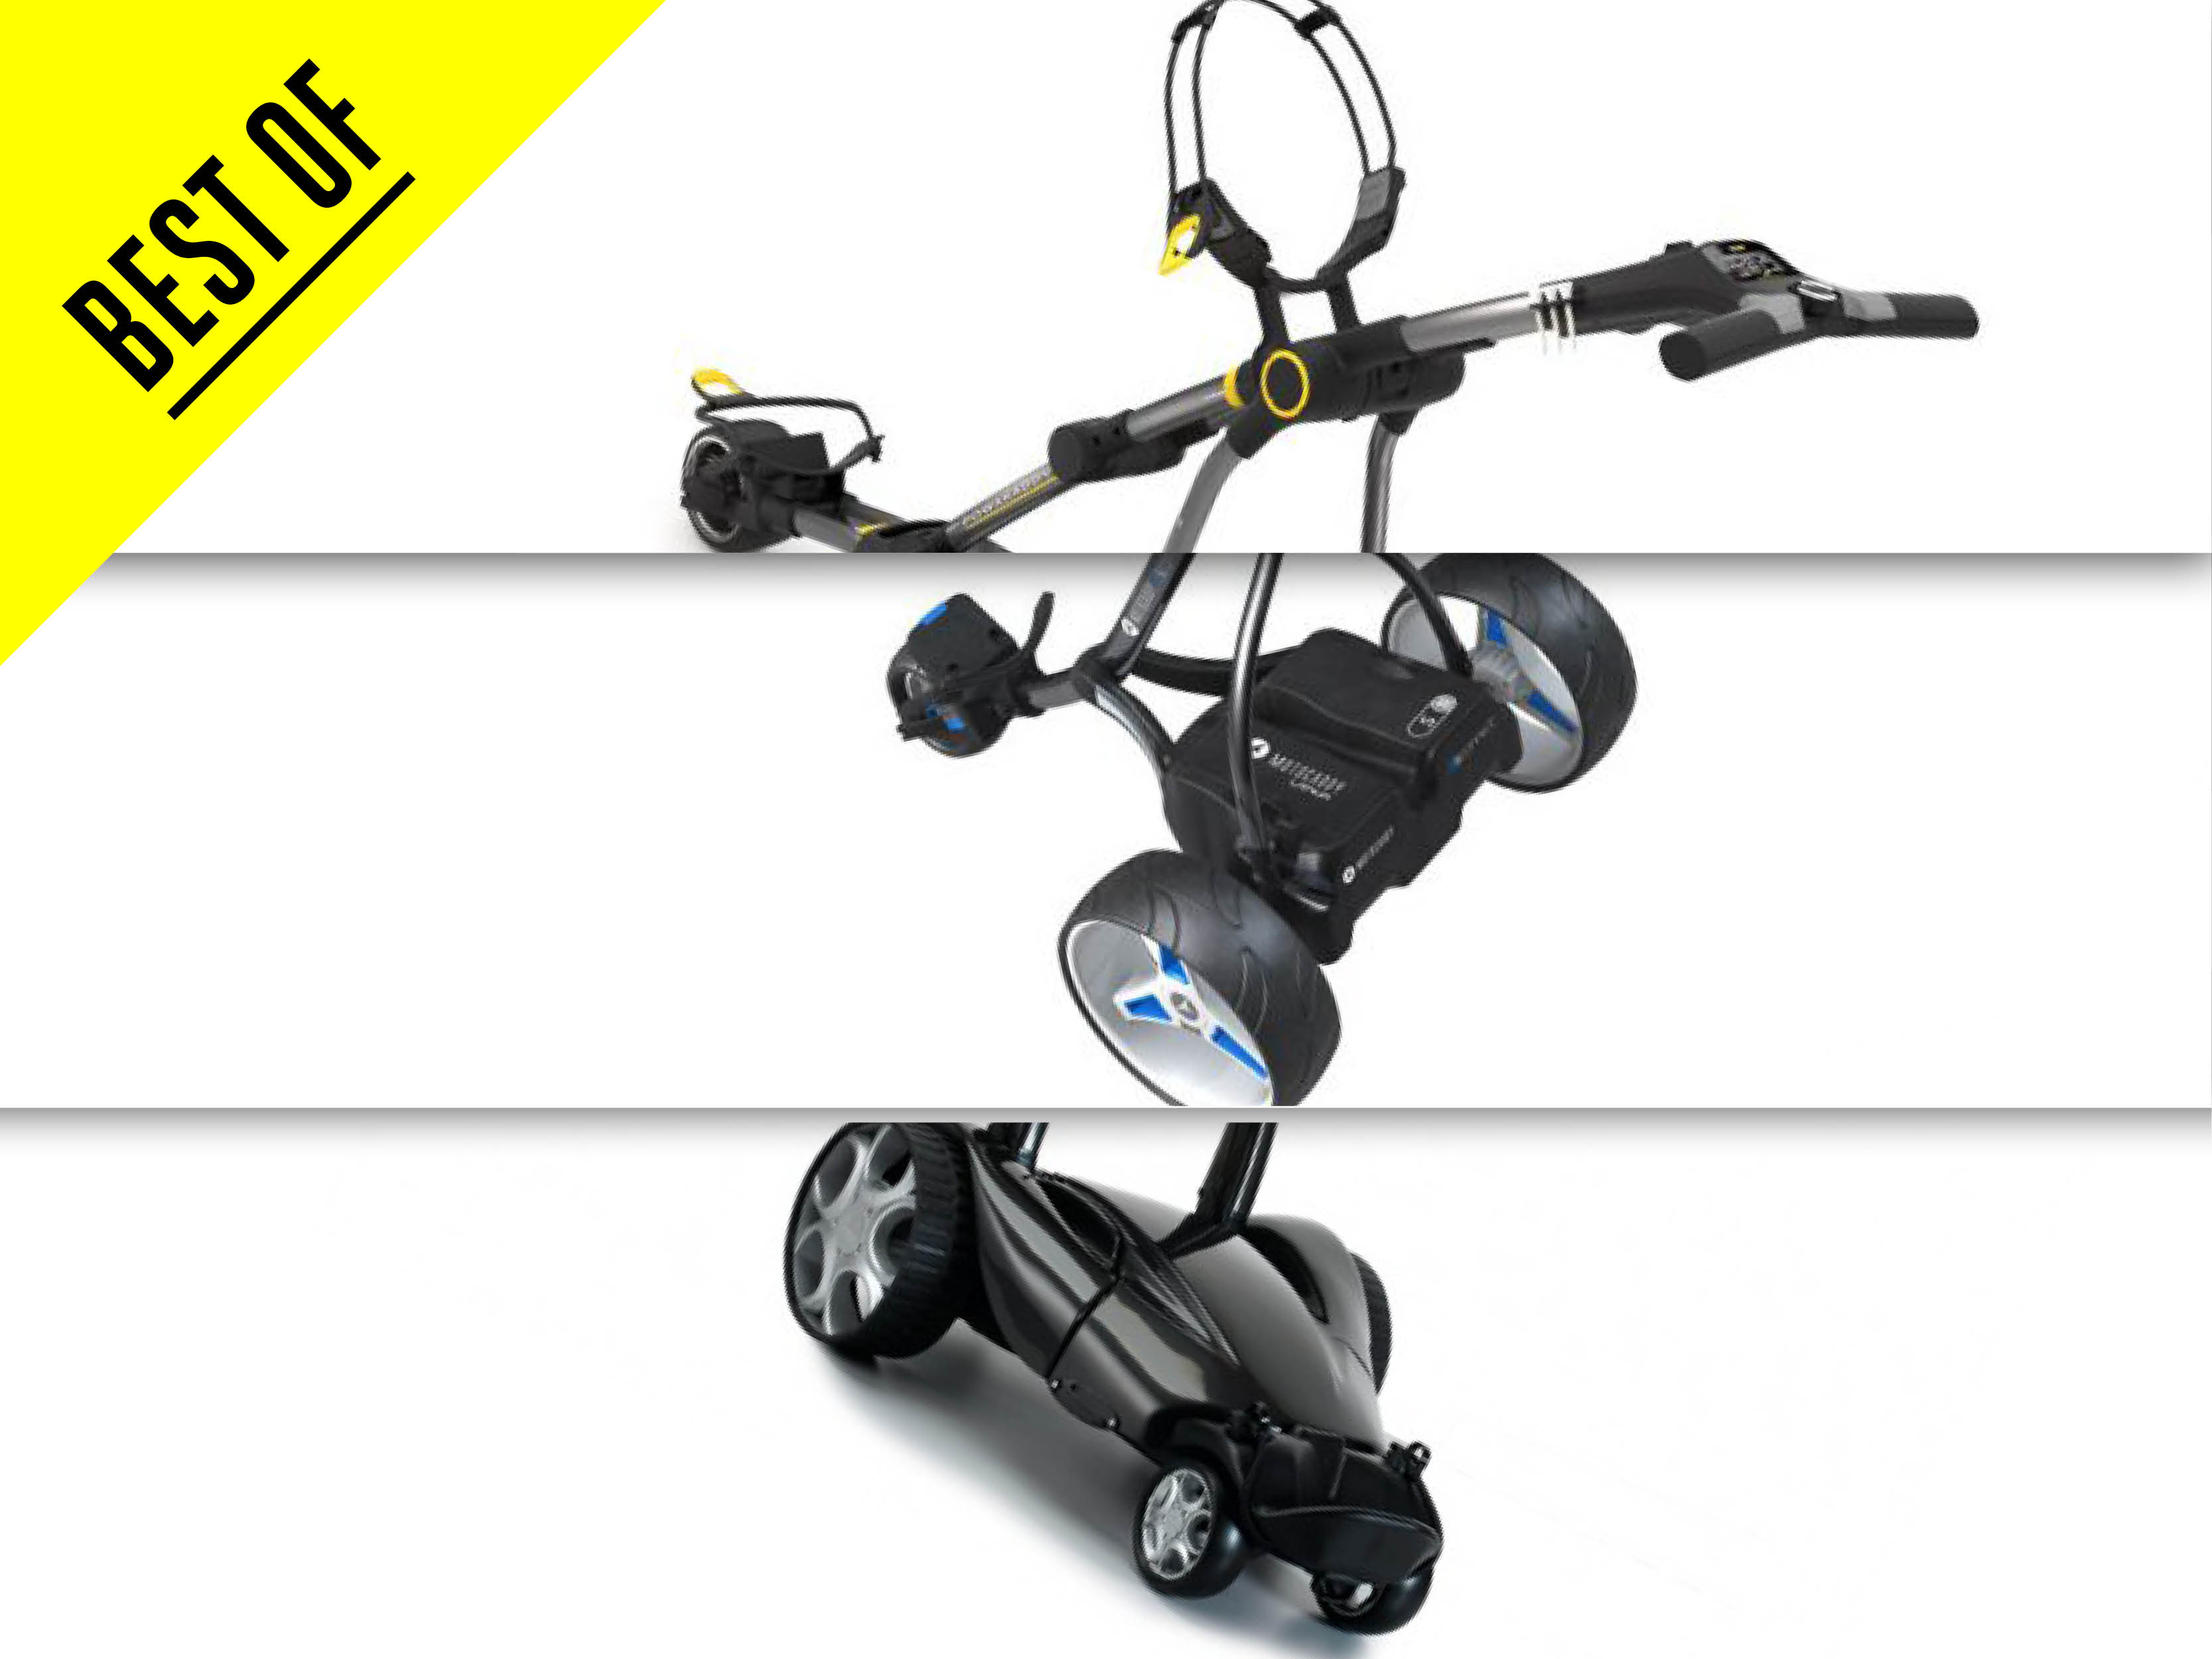 We've reviewed top best Golf Trolleys on the market. See the result in our Golf Trolleys comparison on laroncauskimmor.gq